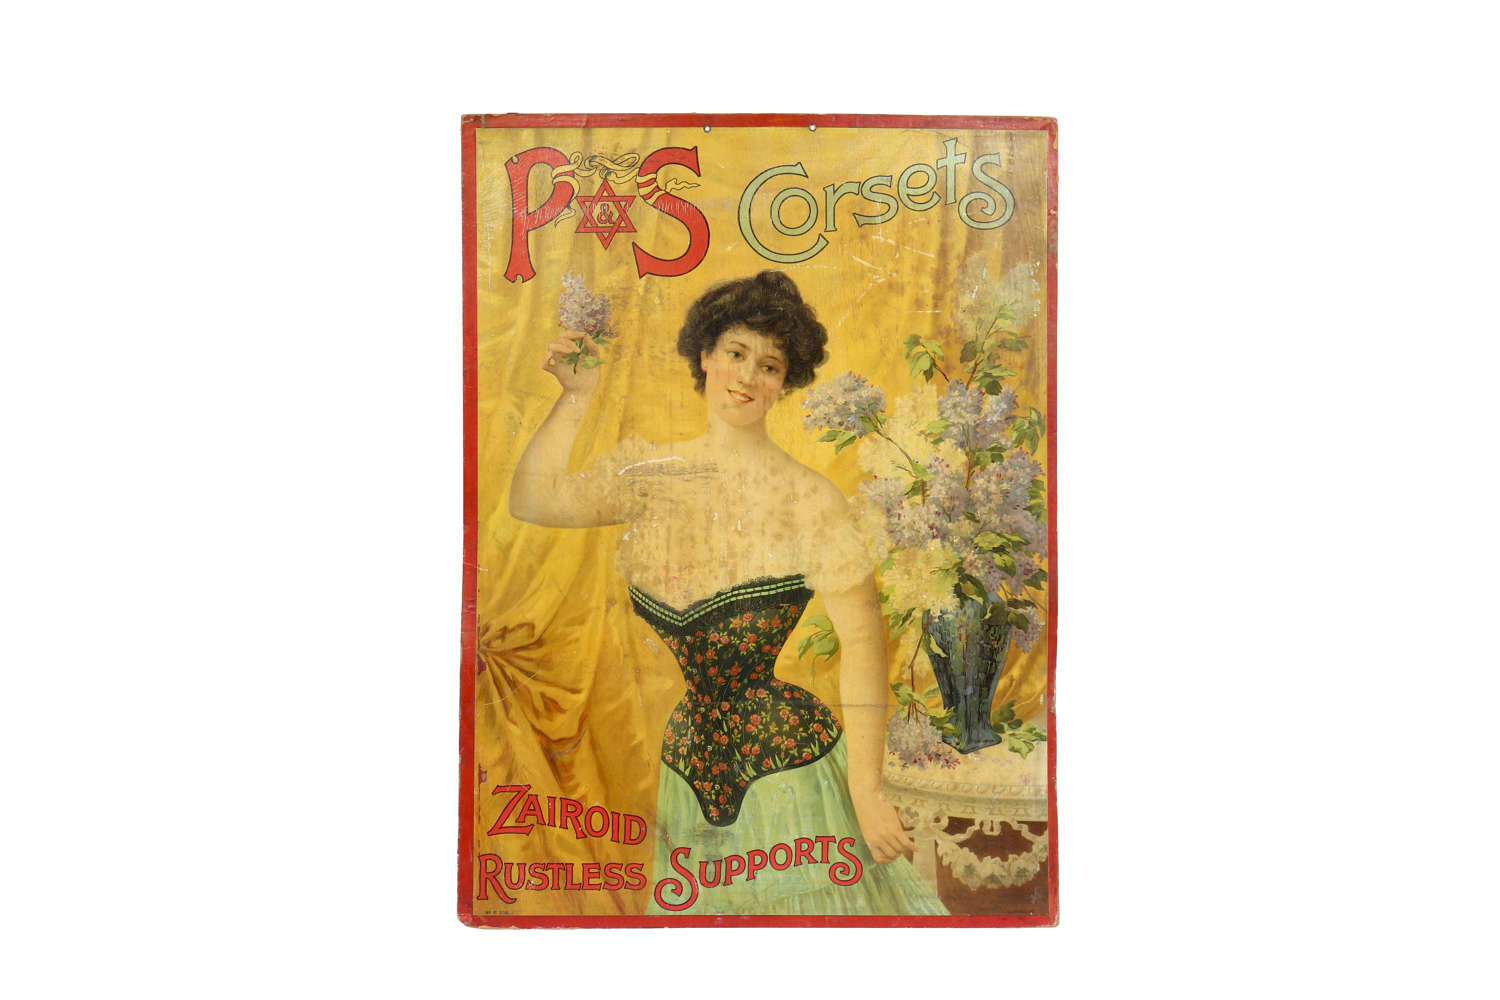 Original advertising showcard for P&S Corsets